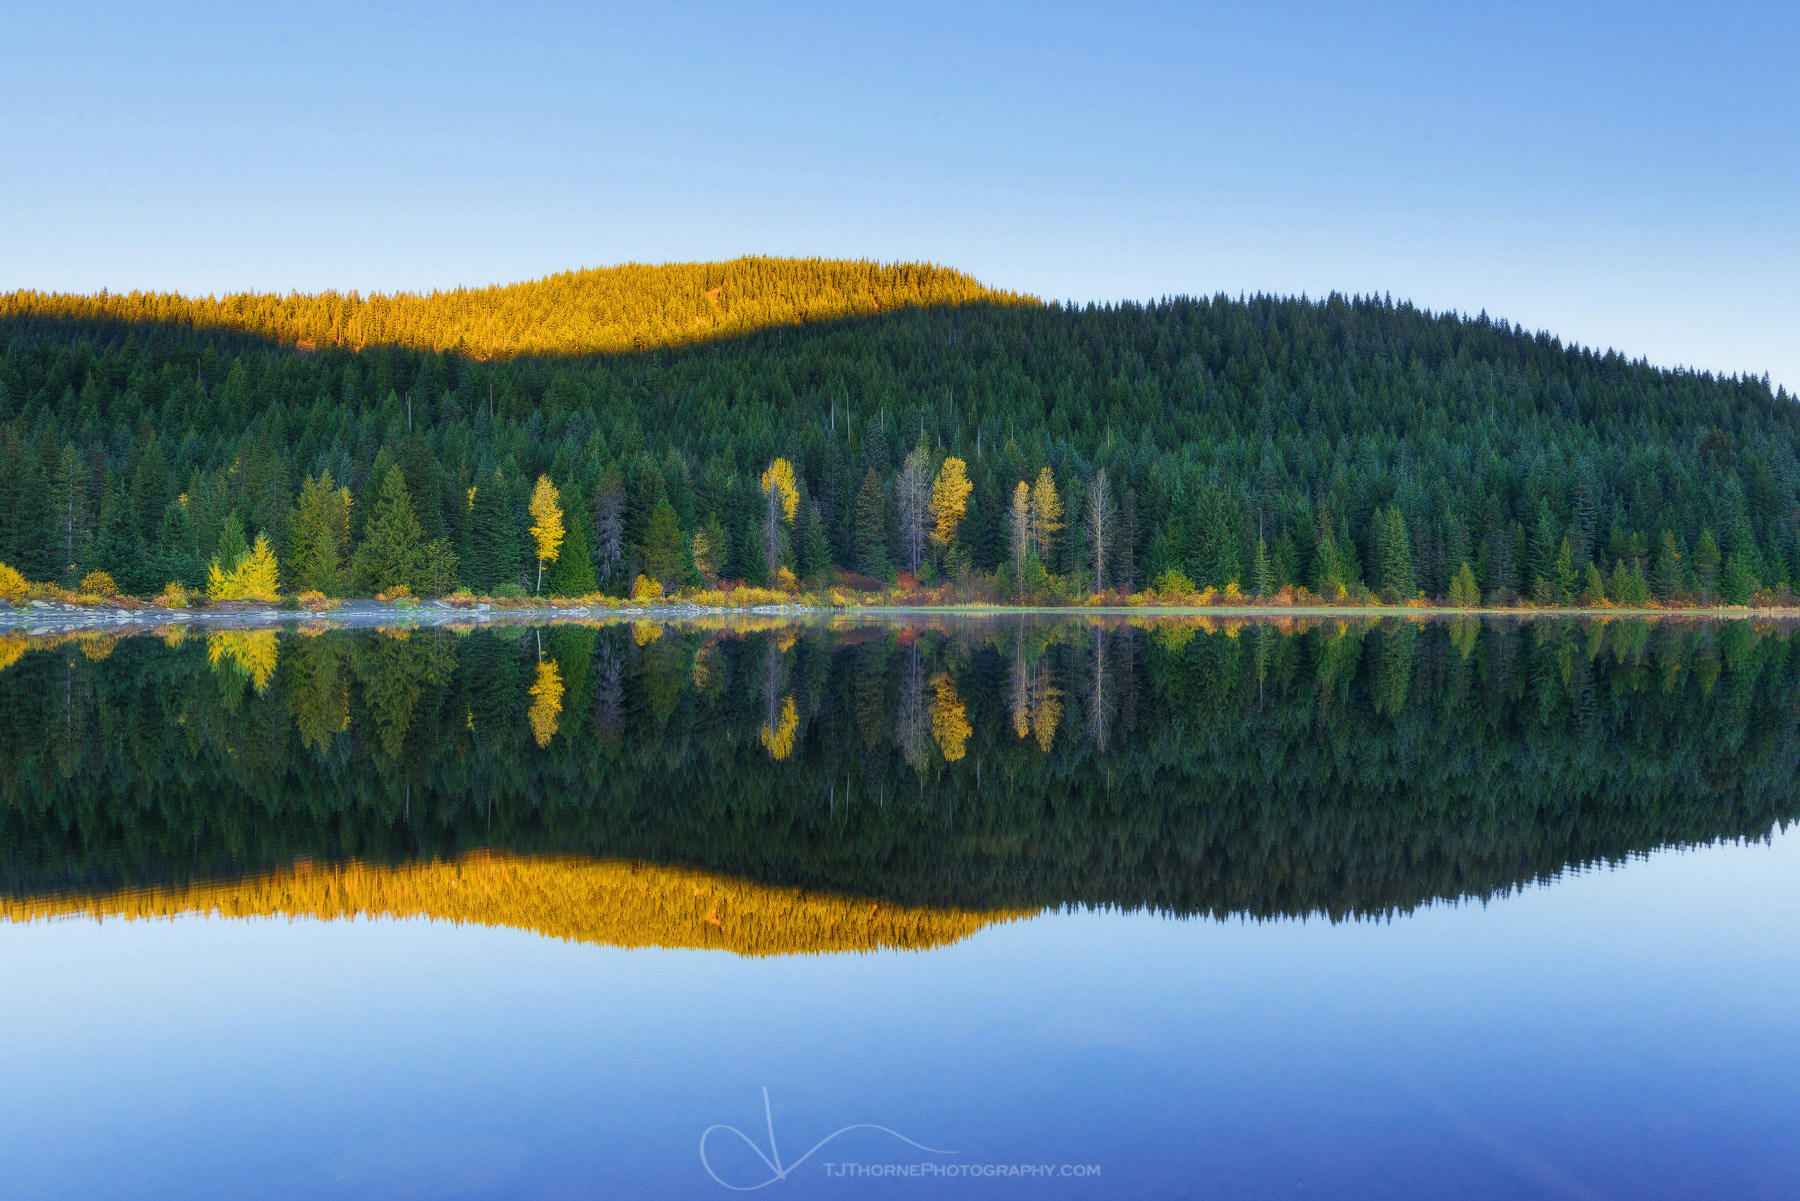 FINE ART LIMITED EDITION OF 100 Sunrise light and autumn colors reflected in the waters Trillium Lake, Oregon.